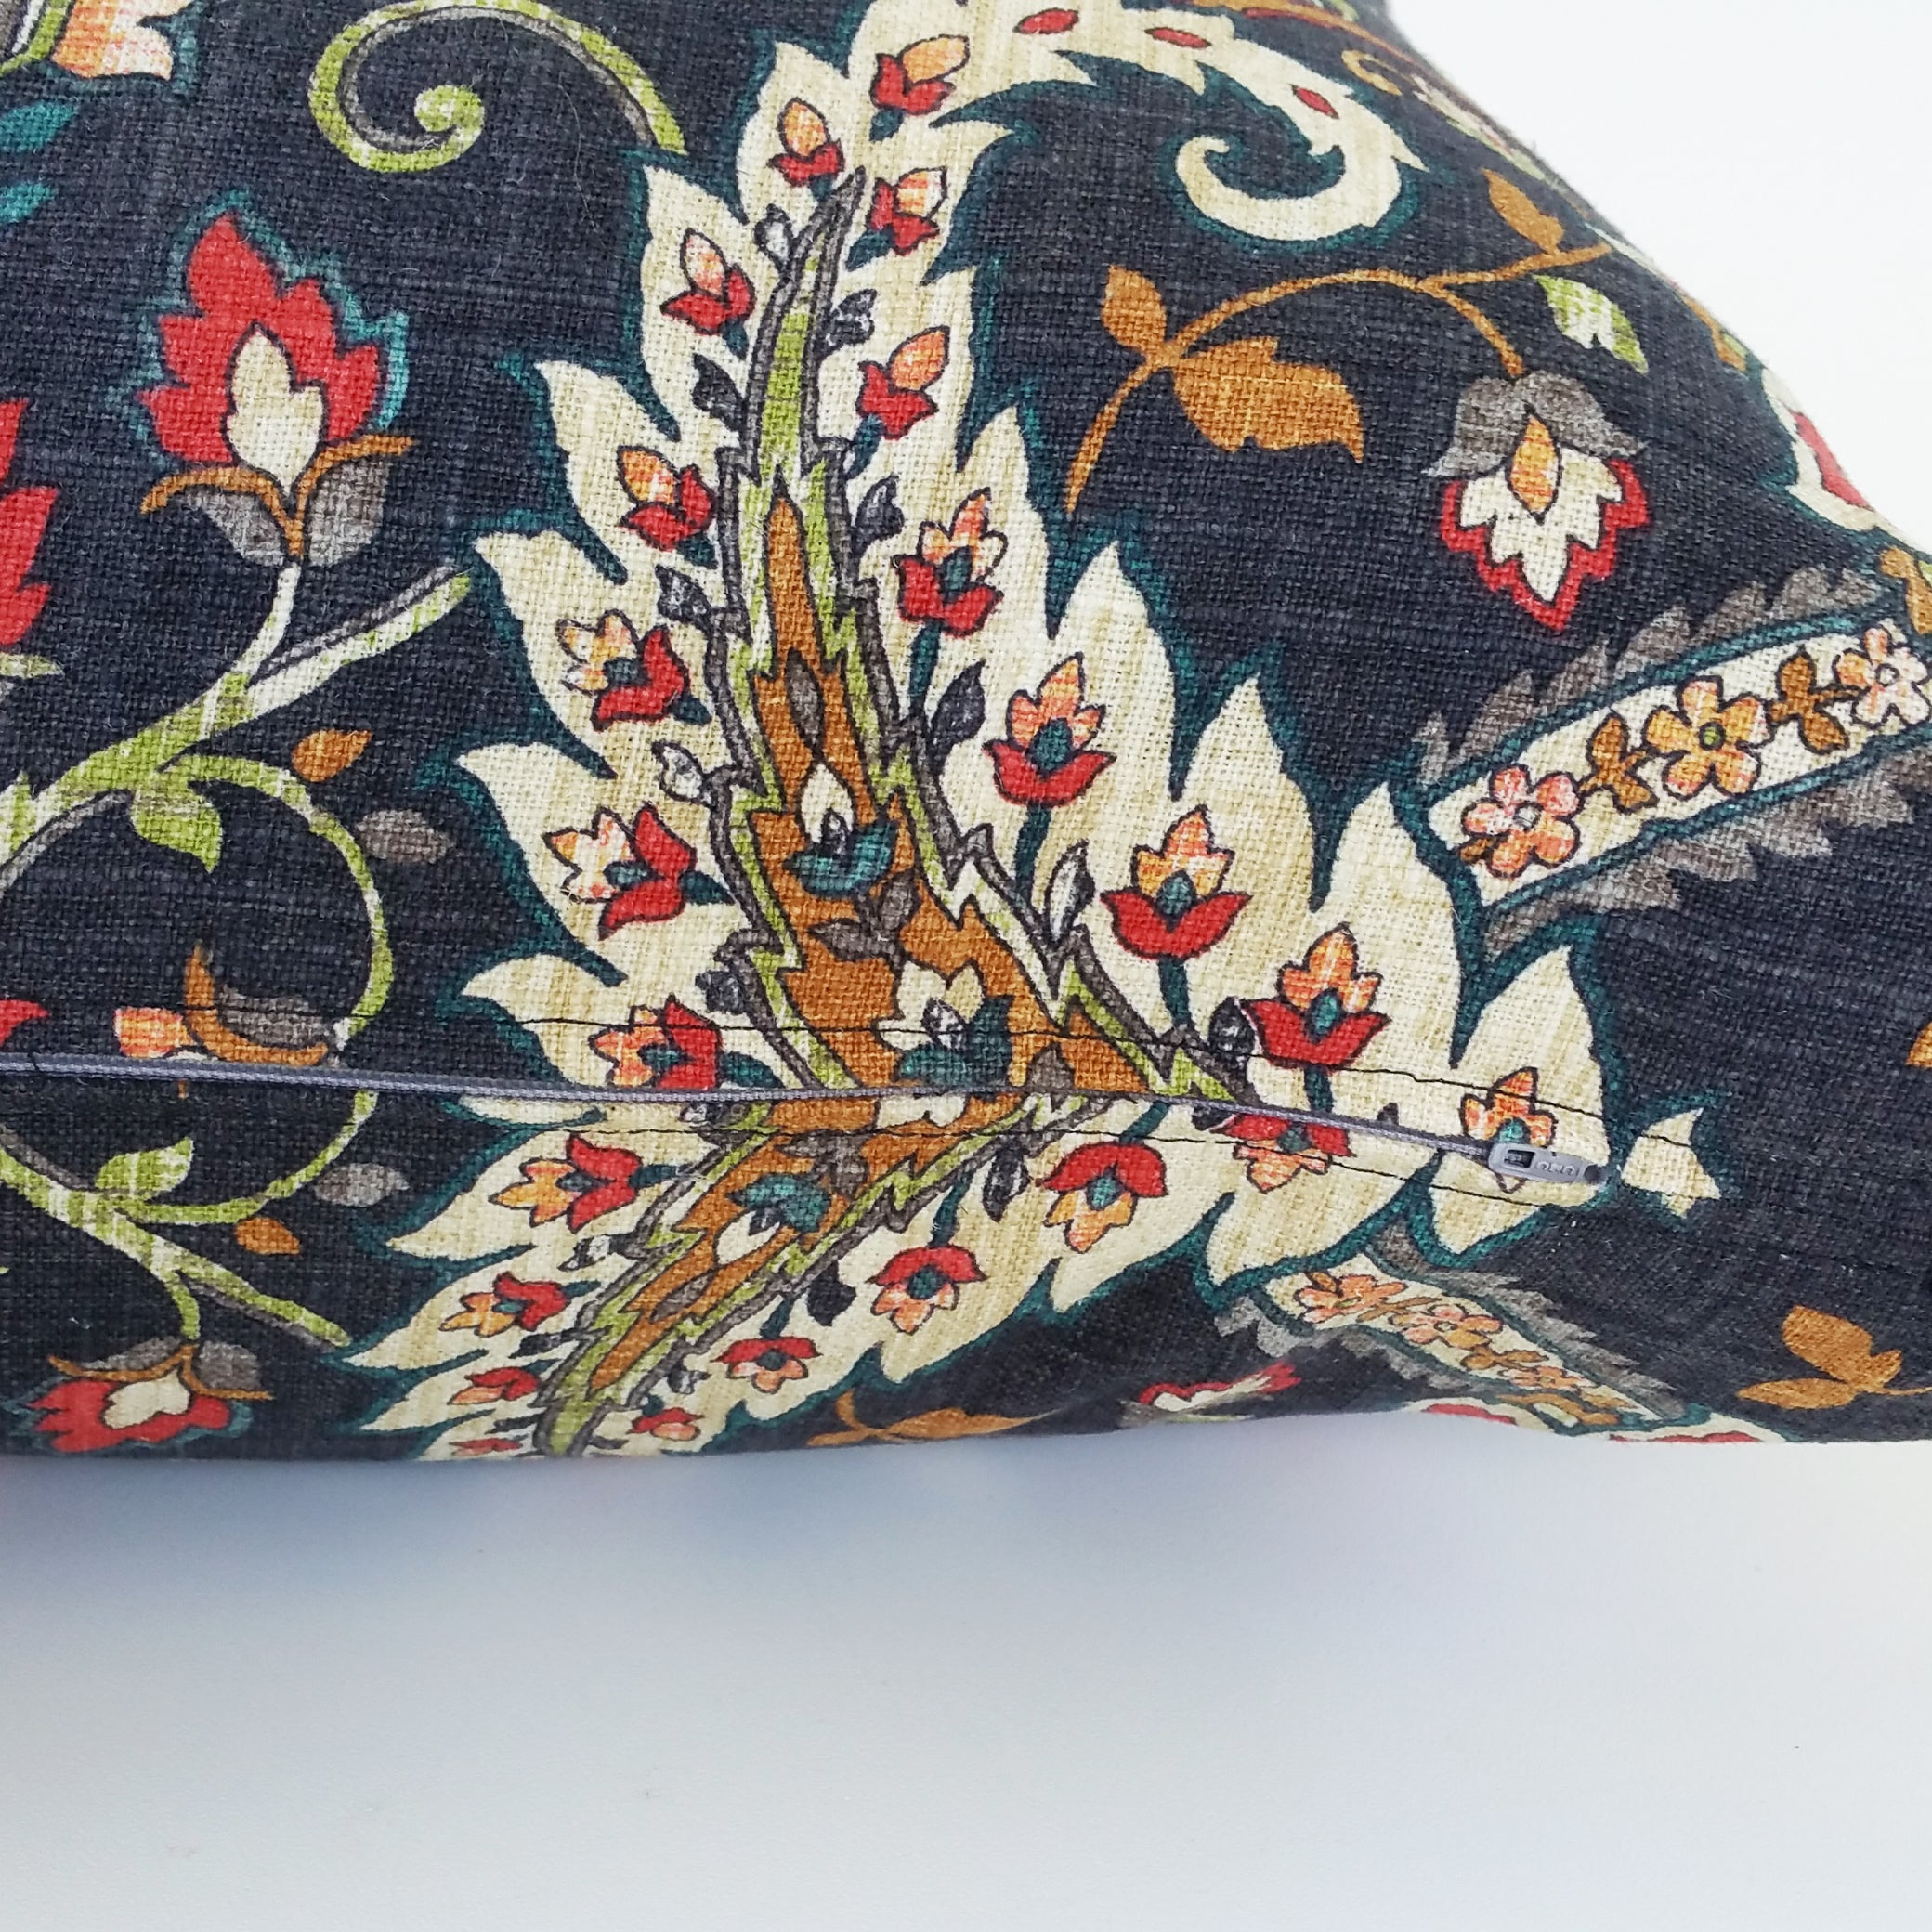 Black & Jewel Tone Floral Linen Pillow Cover Swavelle | Mill Creek Fidelio Cliffside Fabric- Limited Edition